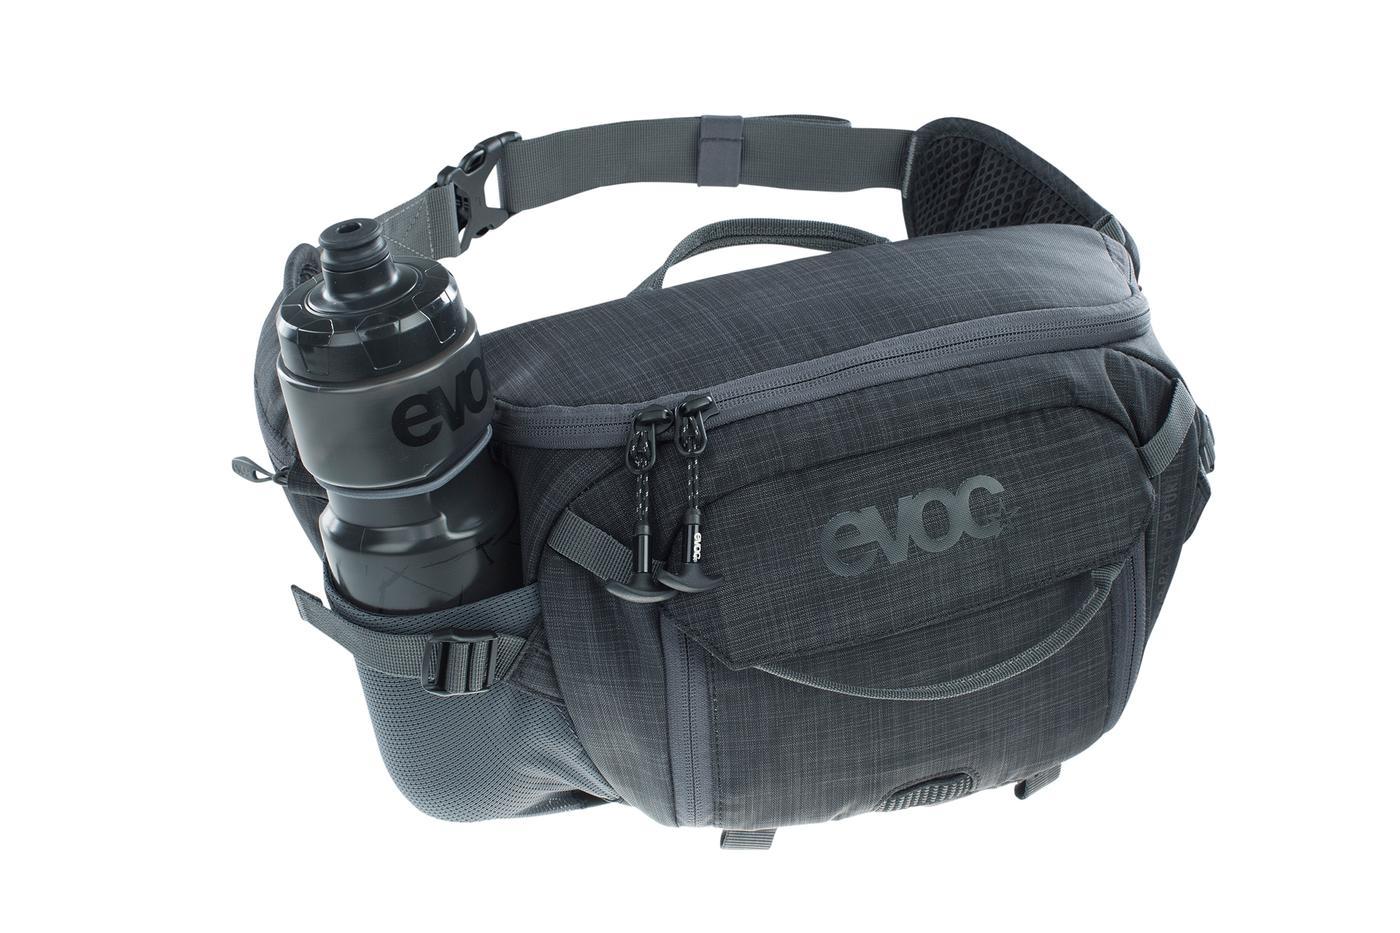 EVOC Adds New Hip Pack Capture 7l to Line